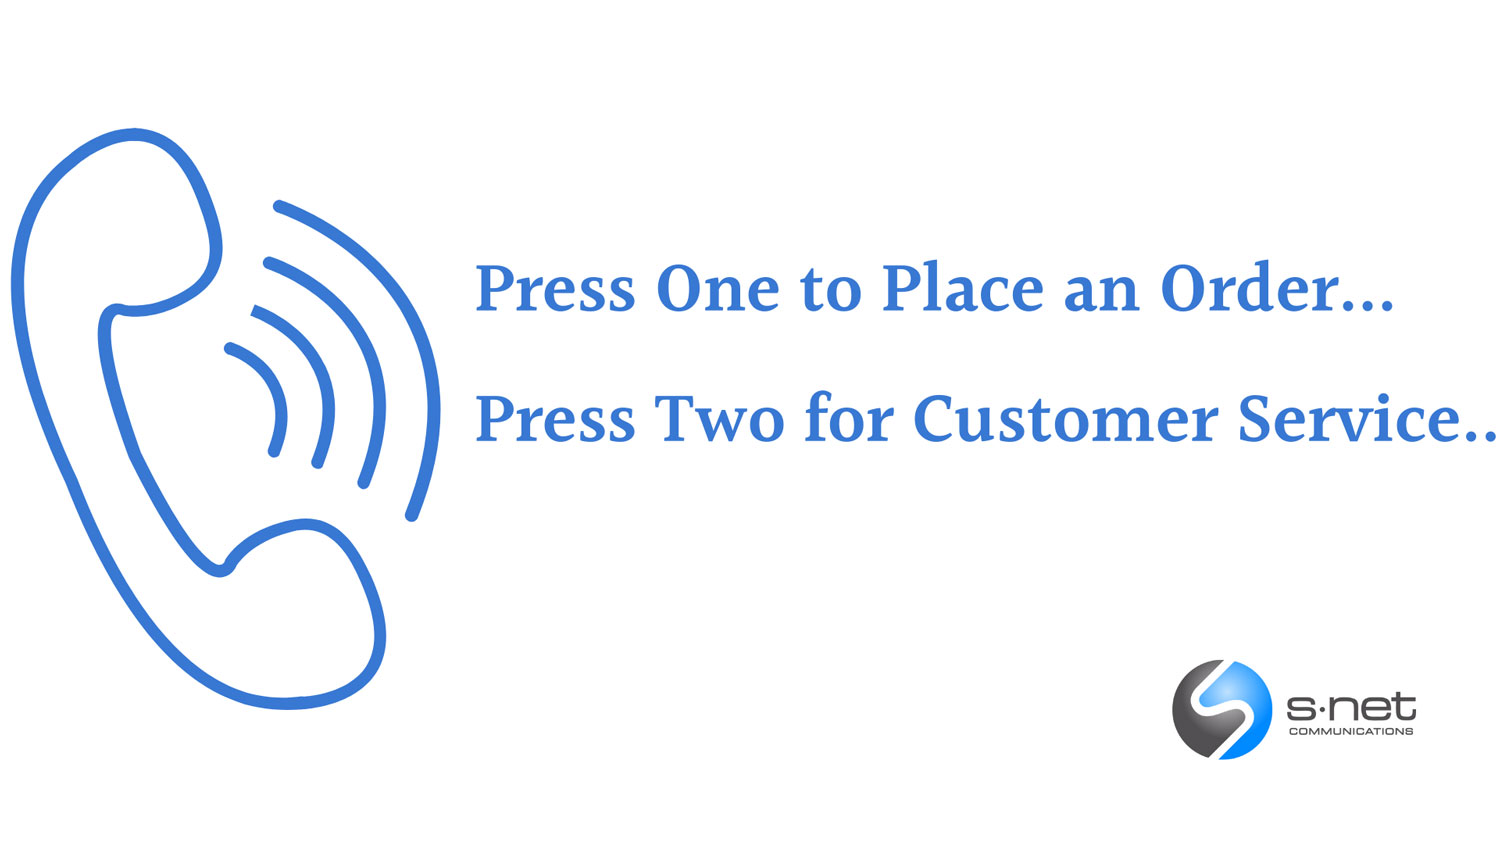 Cloud phone for customer service